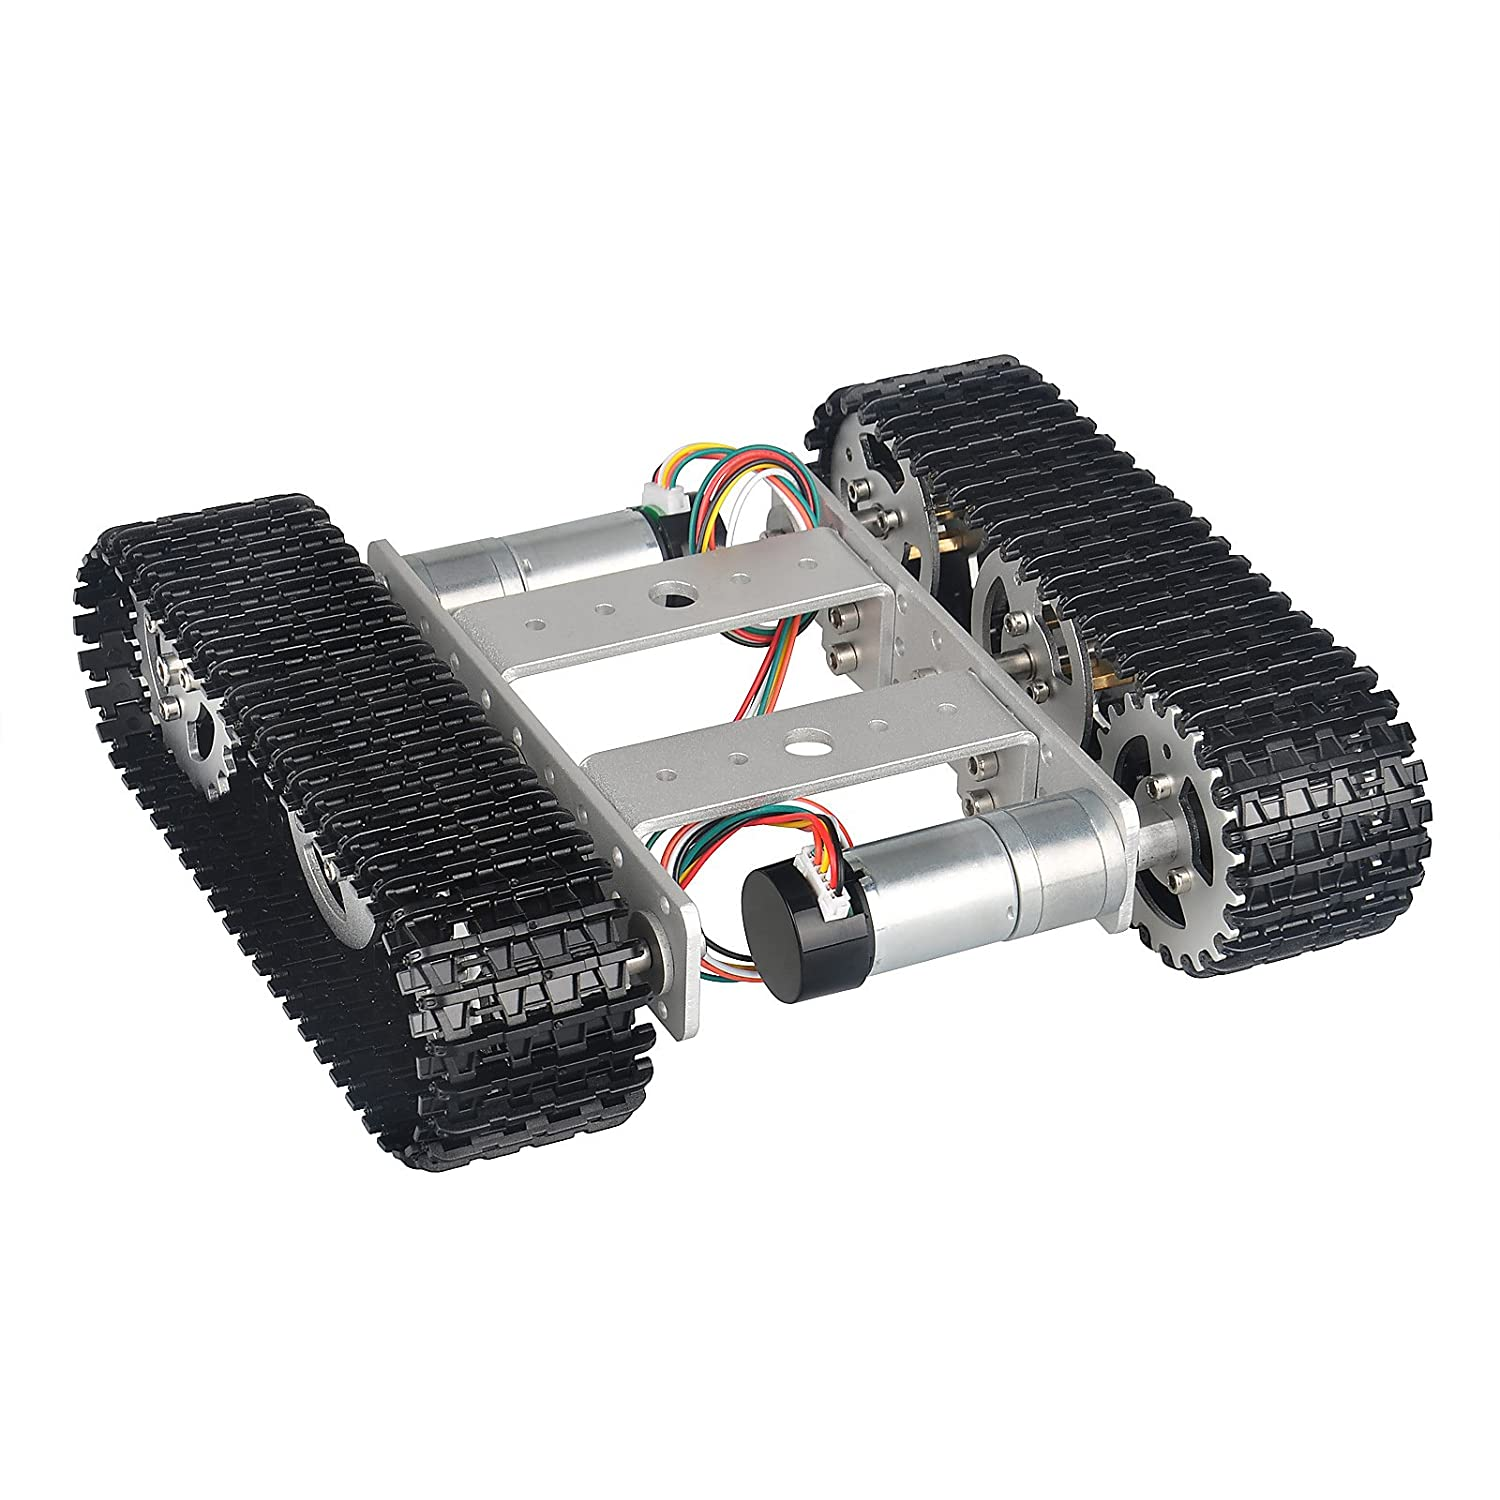 B0746FYXYQ MOUNTAIN_ARK Tracked Robot Smart Car Platform Aluminum Alloy Chassis with Dual DC 9V Motor for Arduino Raspberry Pi DIY 81rgW2FPHeL